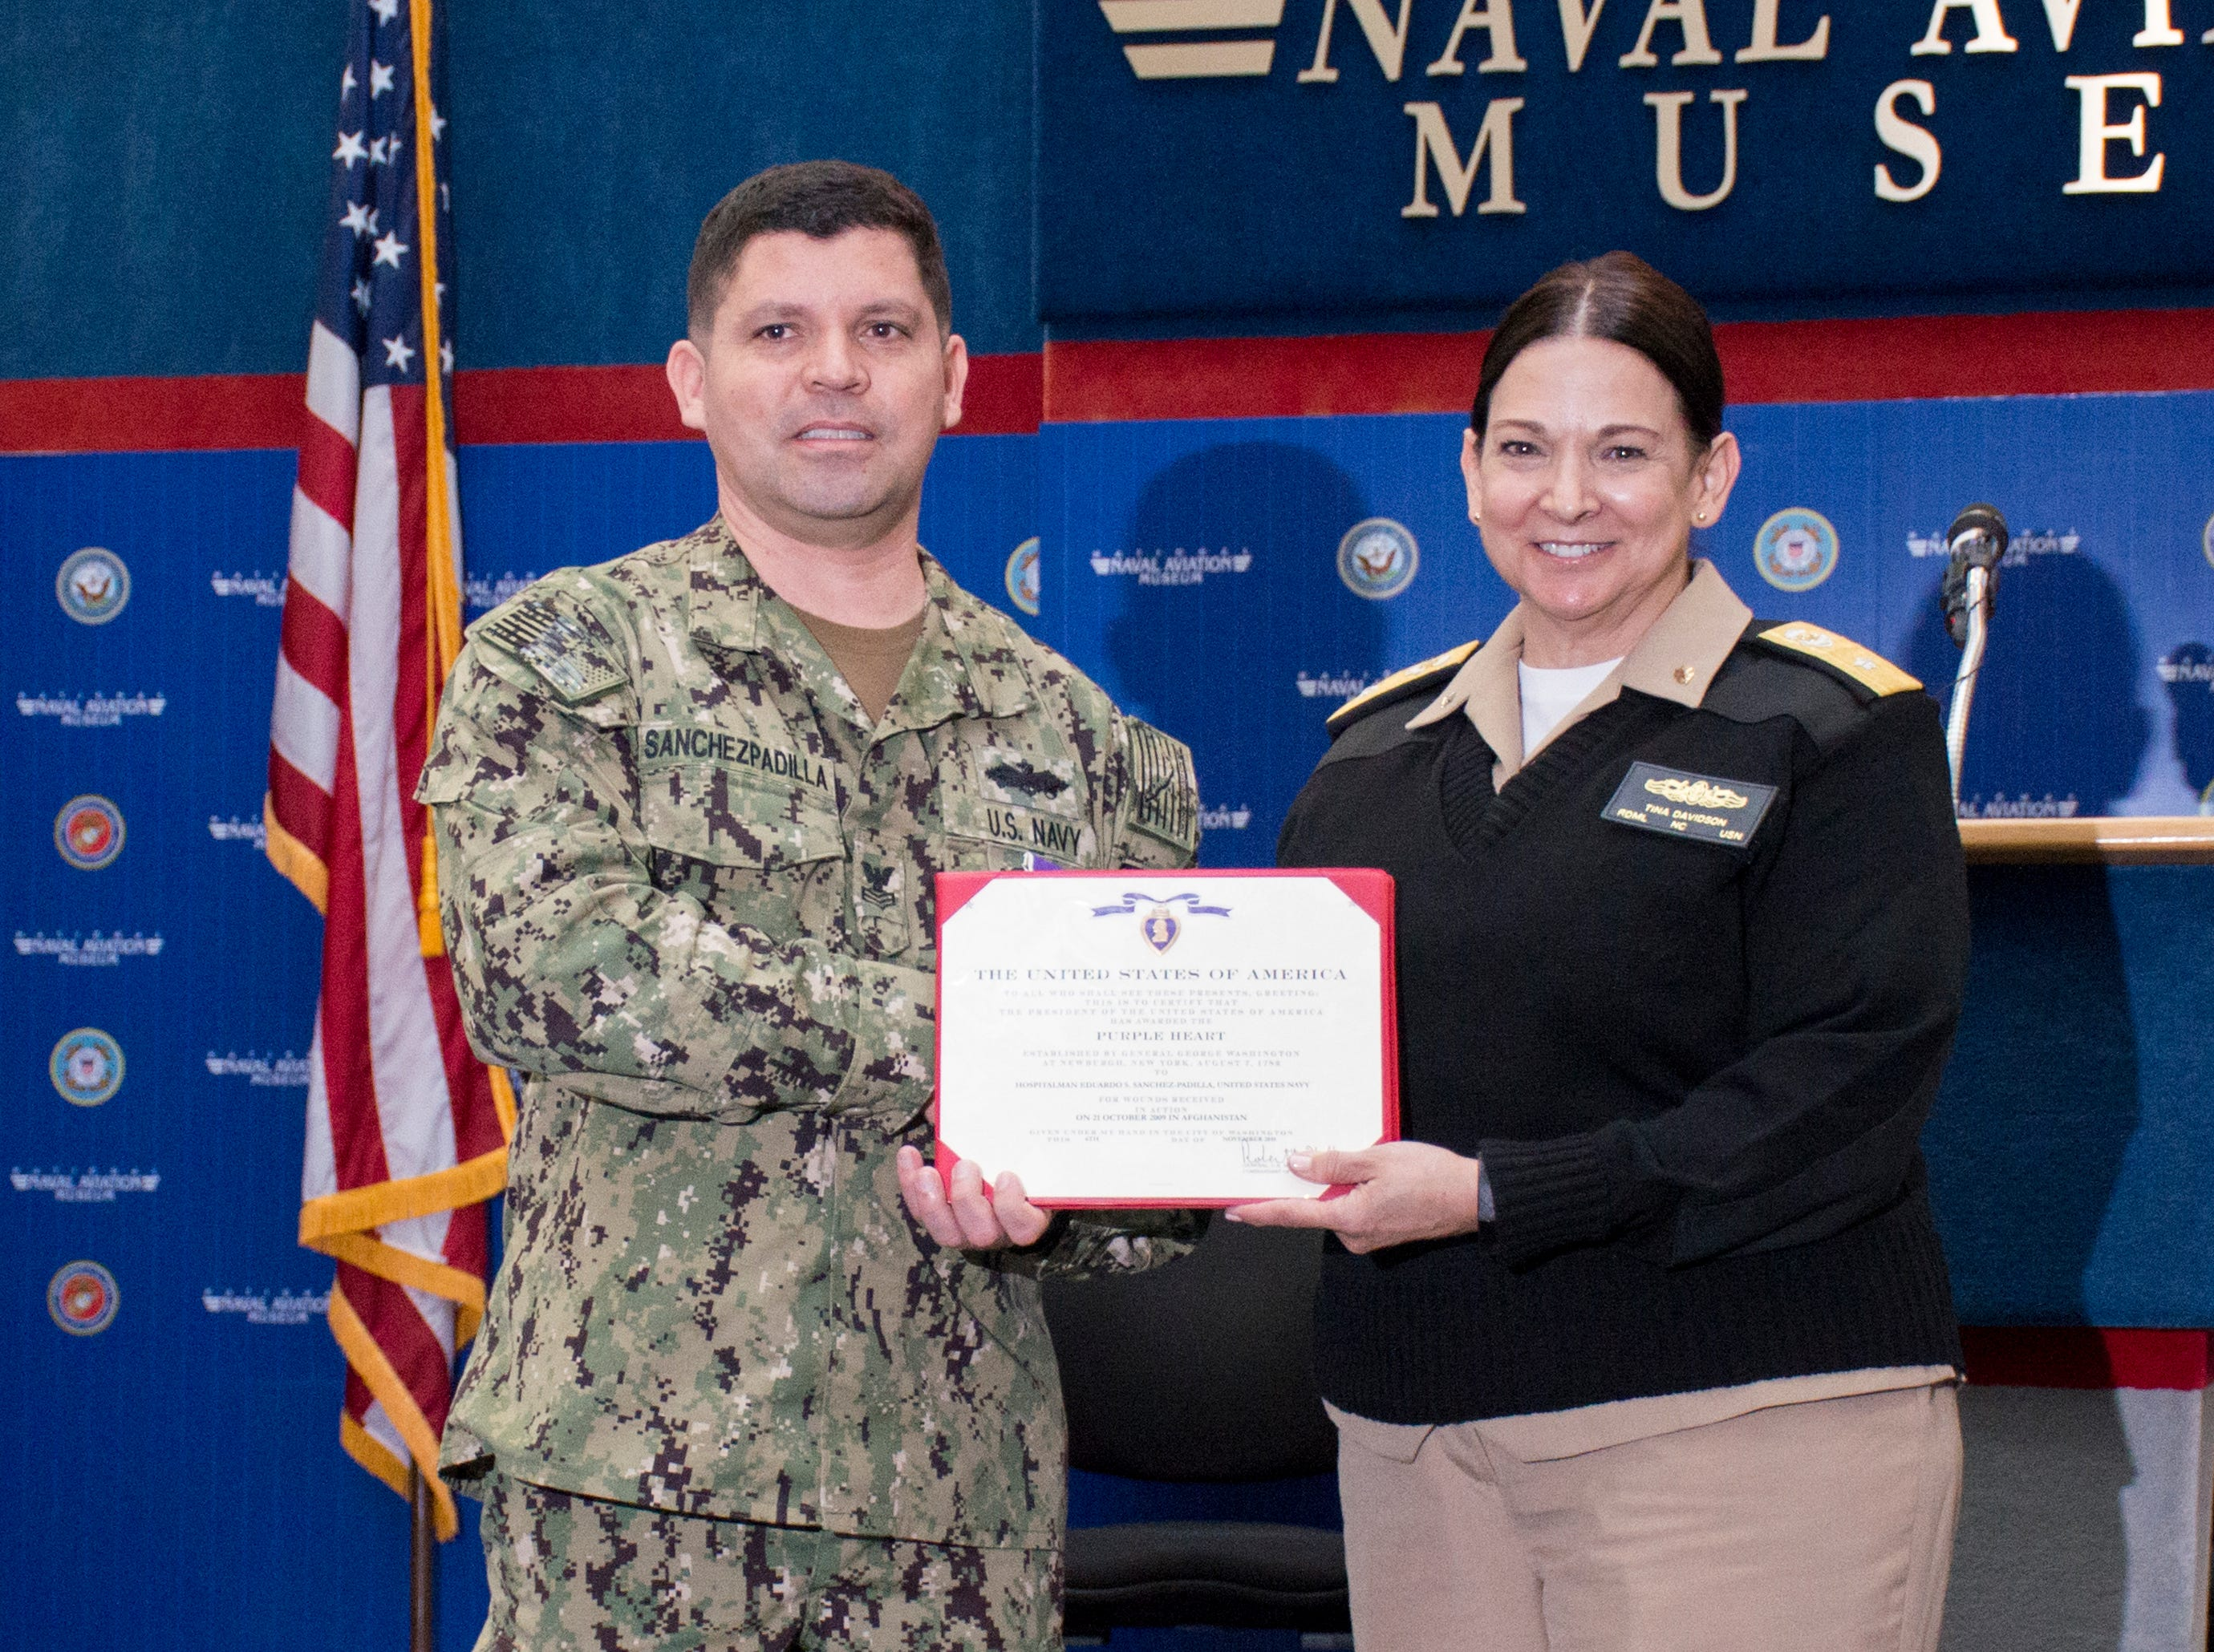 Rear Adm. Tina Davidson, right, poses with Navy Hospital Corpsman 1st Class Eduardo Sanchez-Padilla after presenting him the Purple Heart during a ceremony at the National Naval Aviation Museum in Pensacola on Wednesday, January 23, 2019.  Sanchez-Padilla was wounded in Afghanistan in 2009.